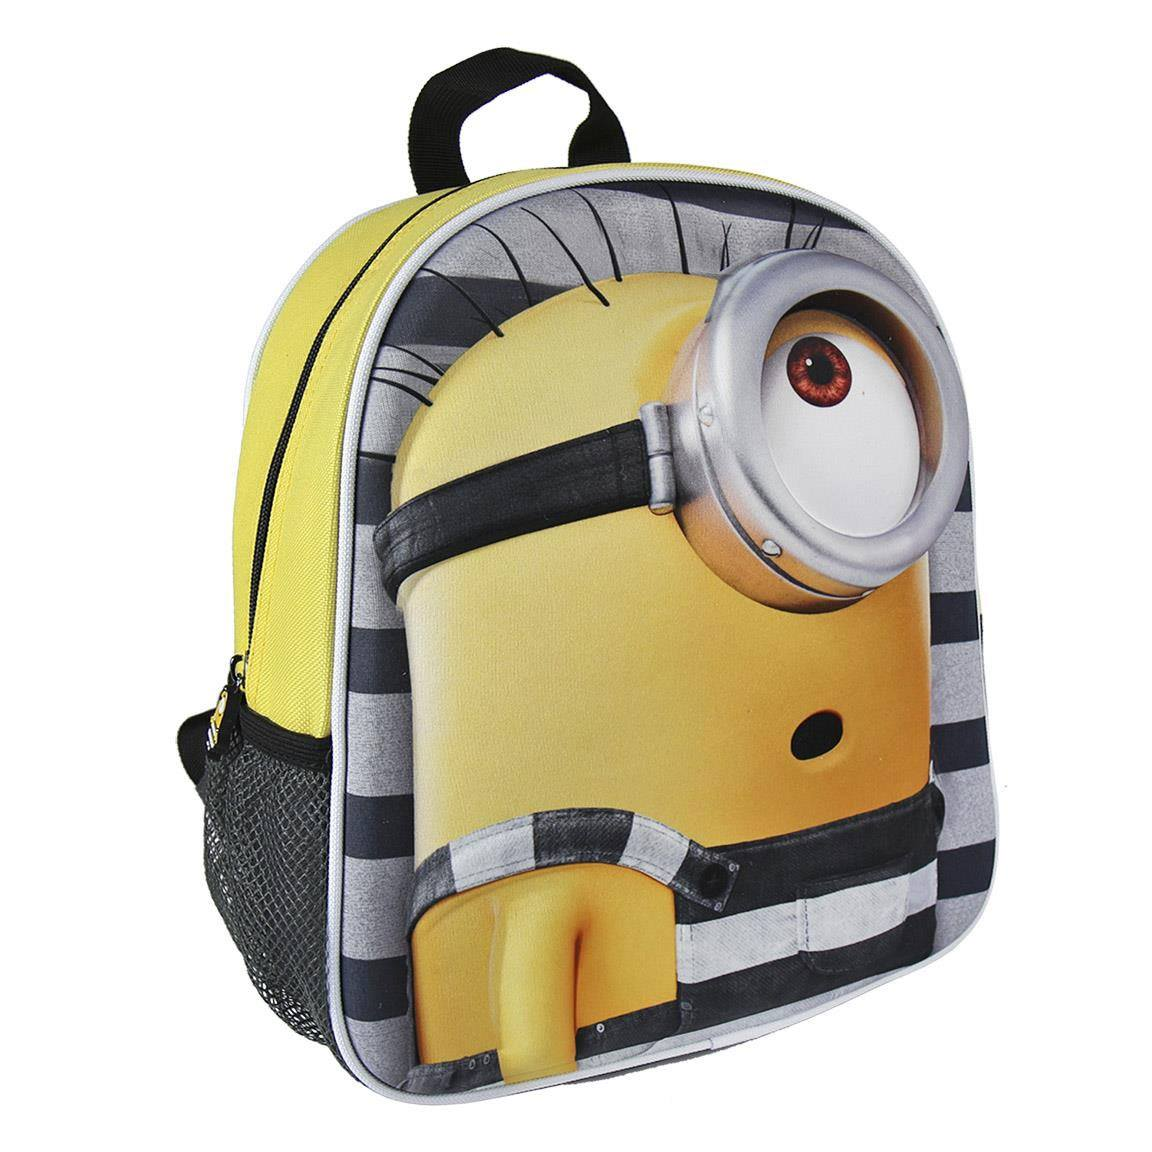 Despicable Me 3 3D Backpack Bob 25 x 31 x 10 cm